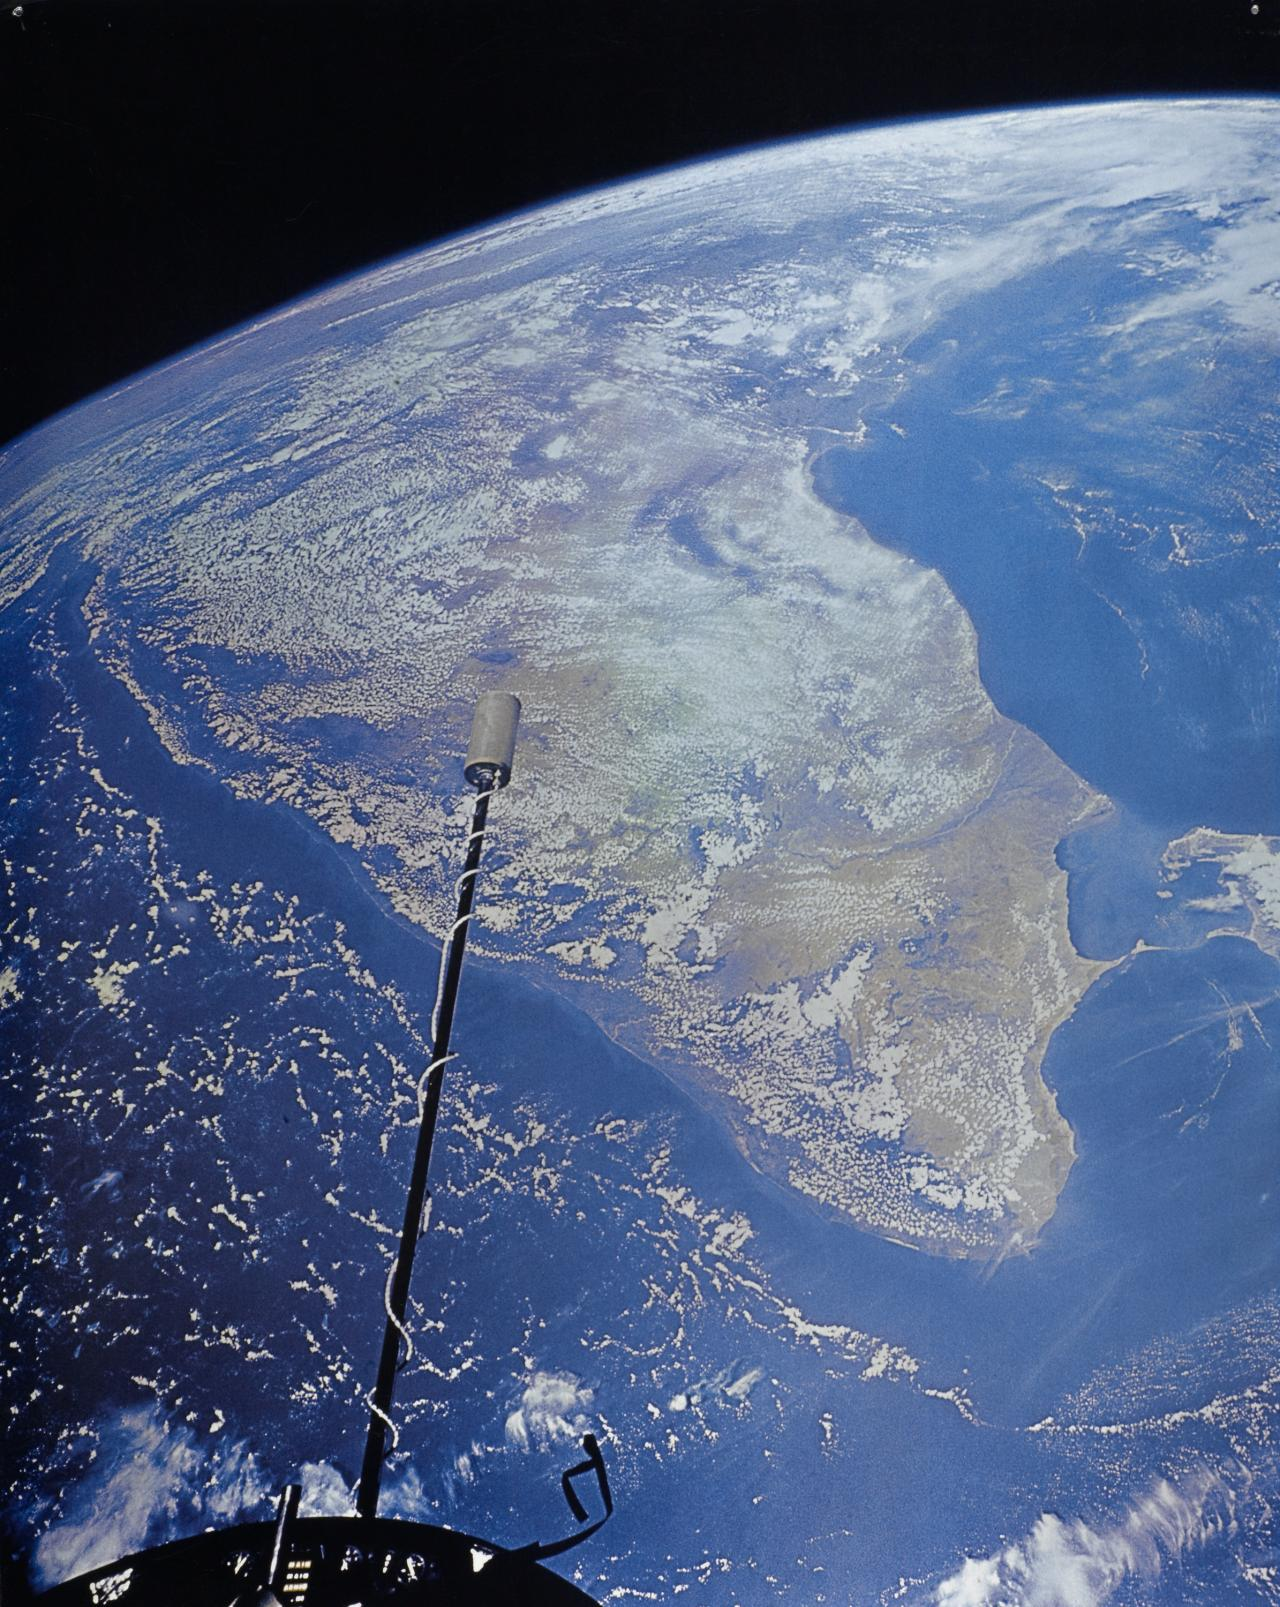 India and Ceylon from spacecraft eight hundred miles up